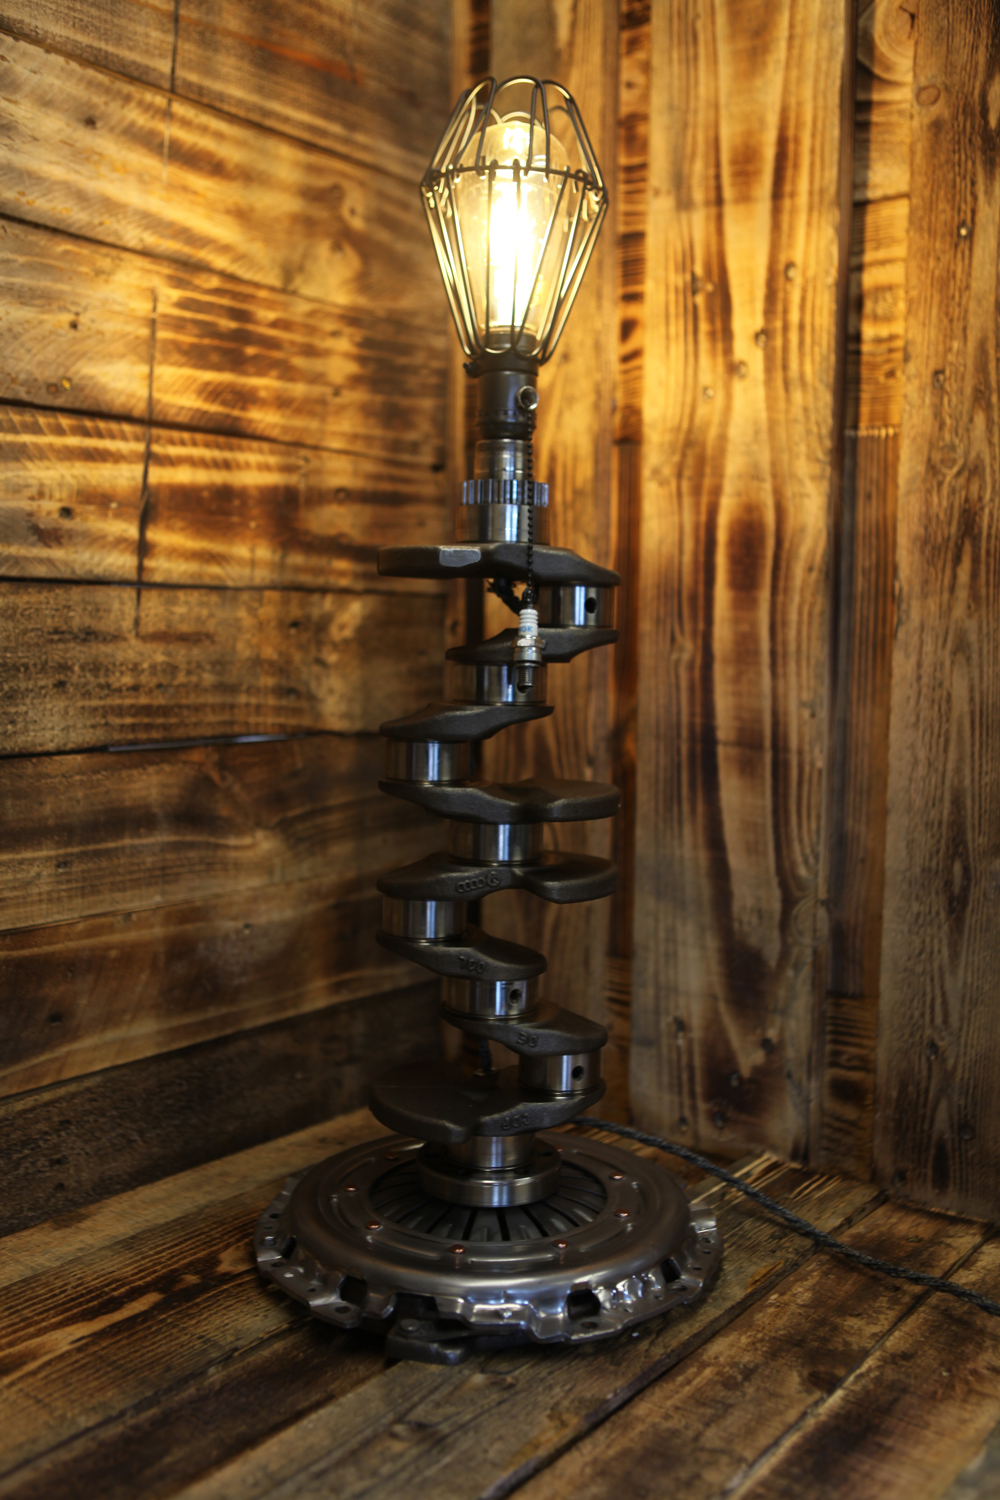 Audi Crank Shaft Metal Art Table Lamp Silly Goat Creations